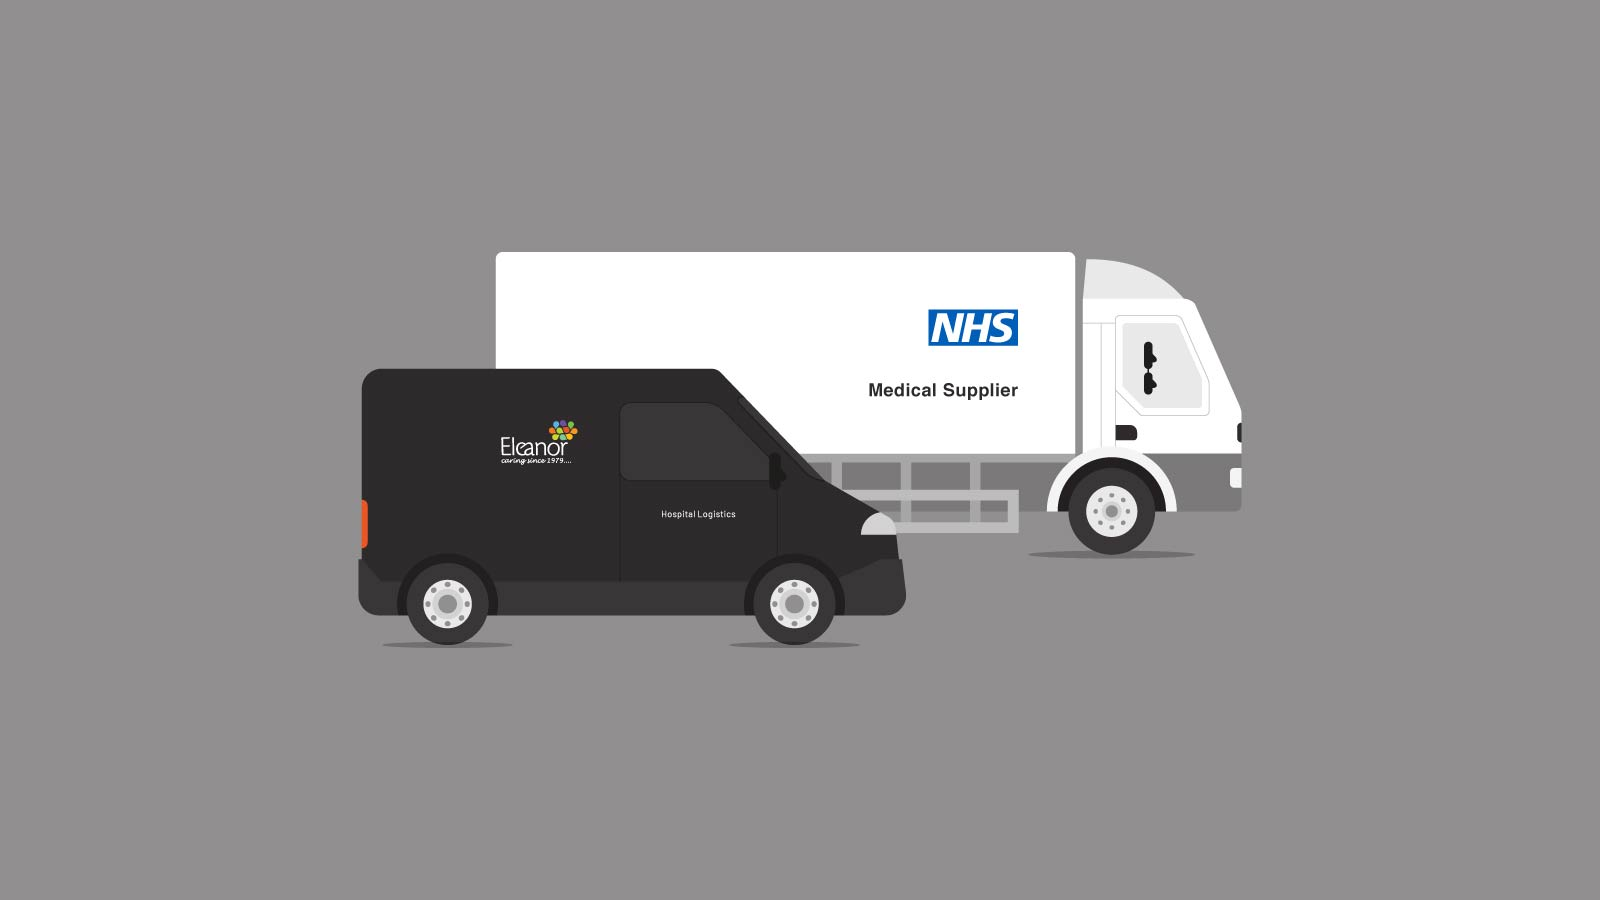 Bespoke brand illustration of an NHS supply truck and a Eleanor Healthcare van.